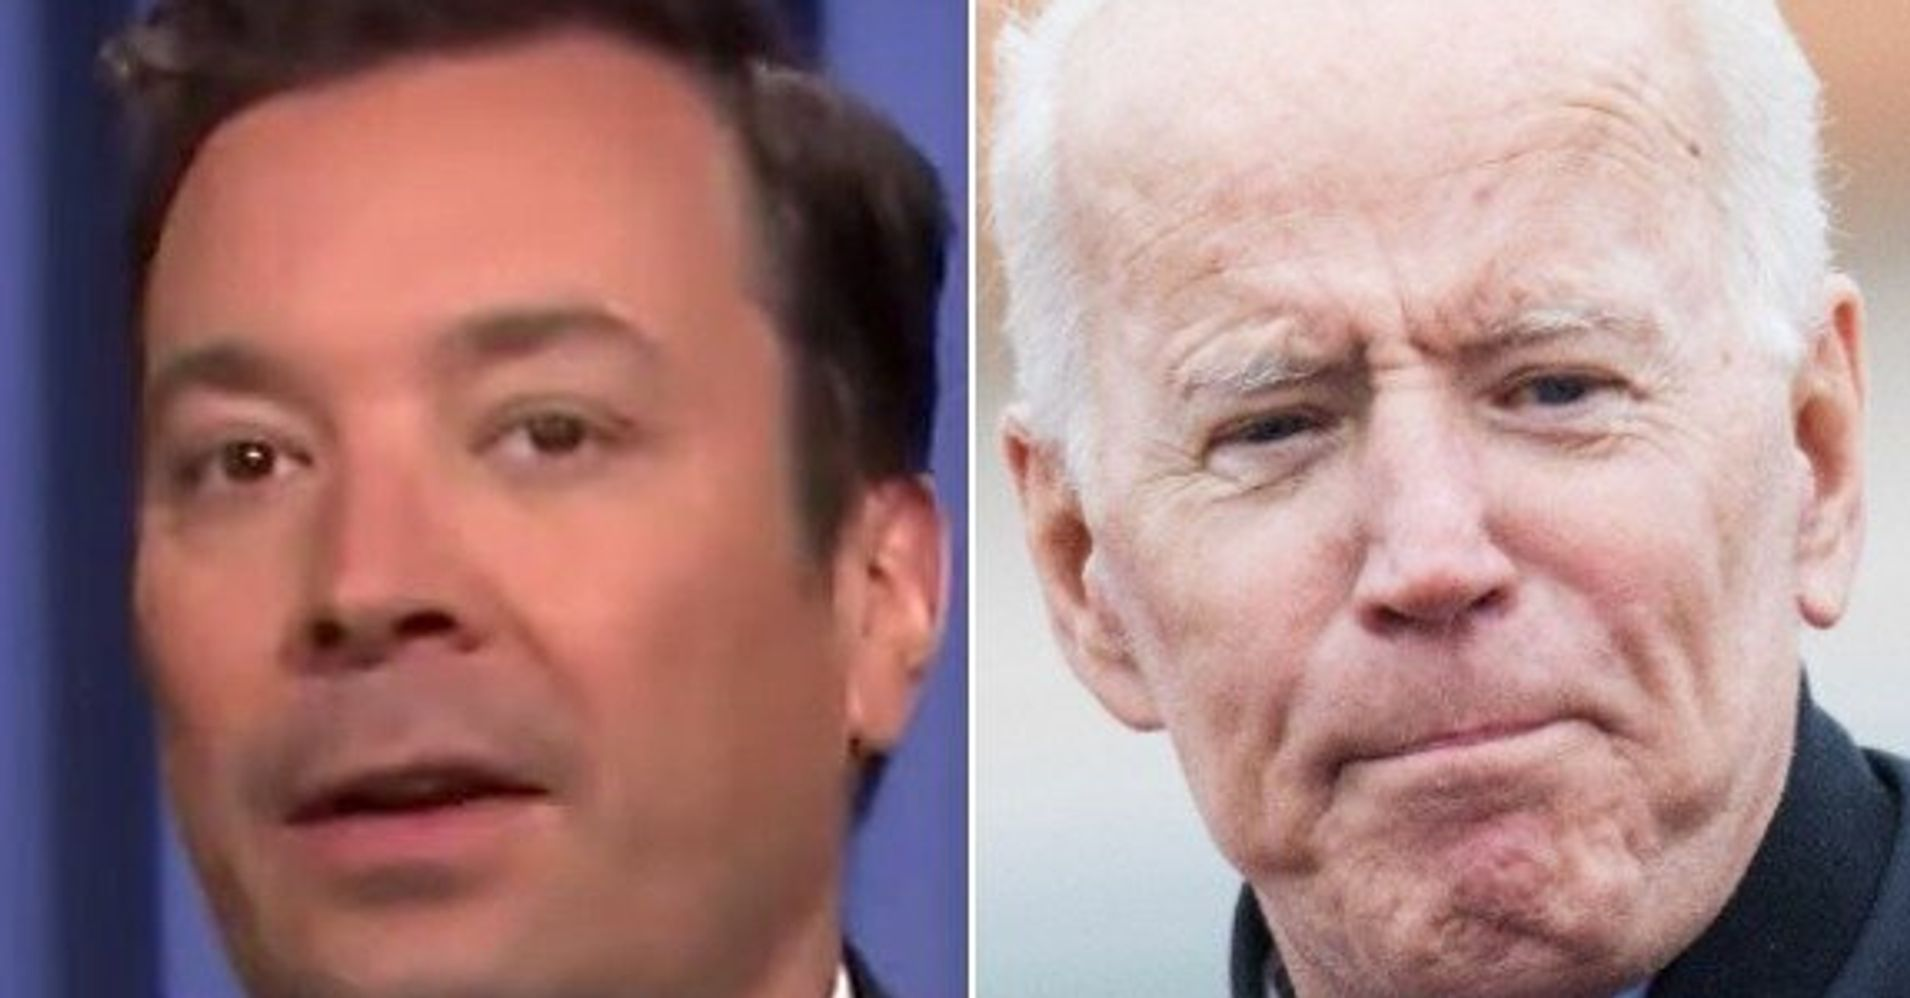 Westlake Legal Group 5cc2c605240000a000258939 Fallon Bashes Joe Biden Over Touching Allegations With Spoof 2020 Slogan